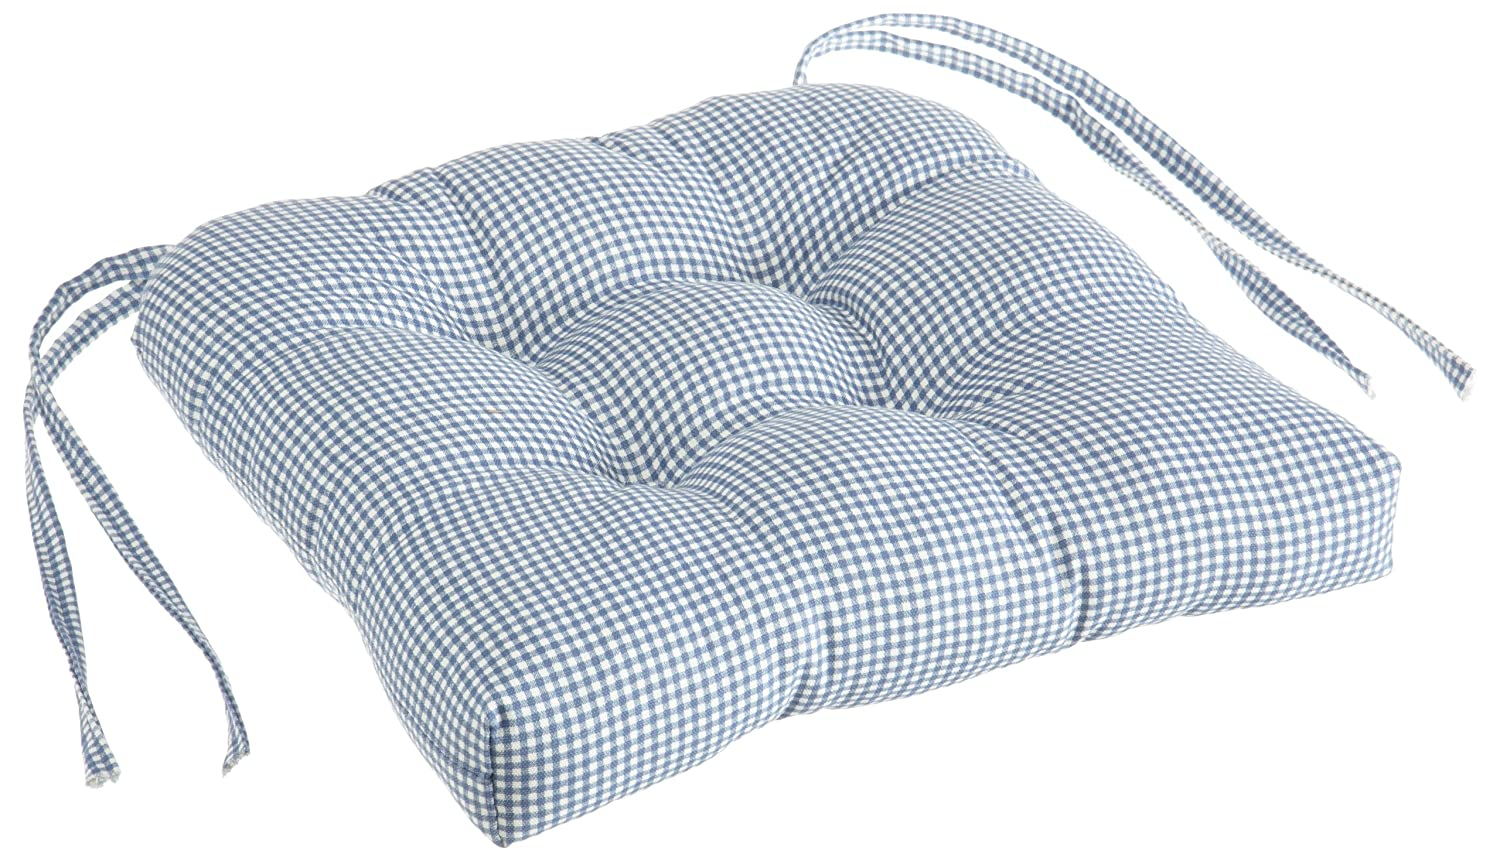 Cushions chair pads and more - Amazon Com Logan Gingham Check Print Cushioned Chair Pad Blue Home Kitchen